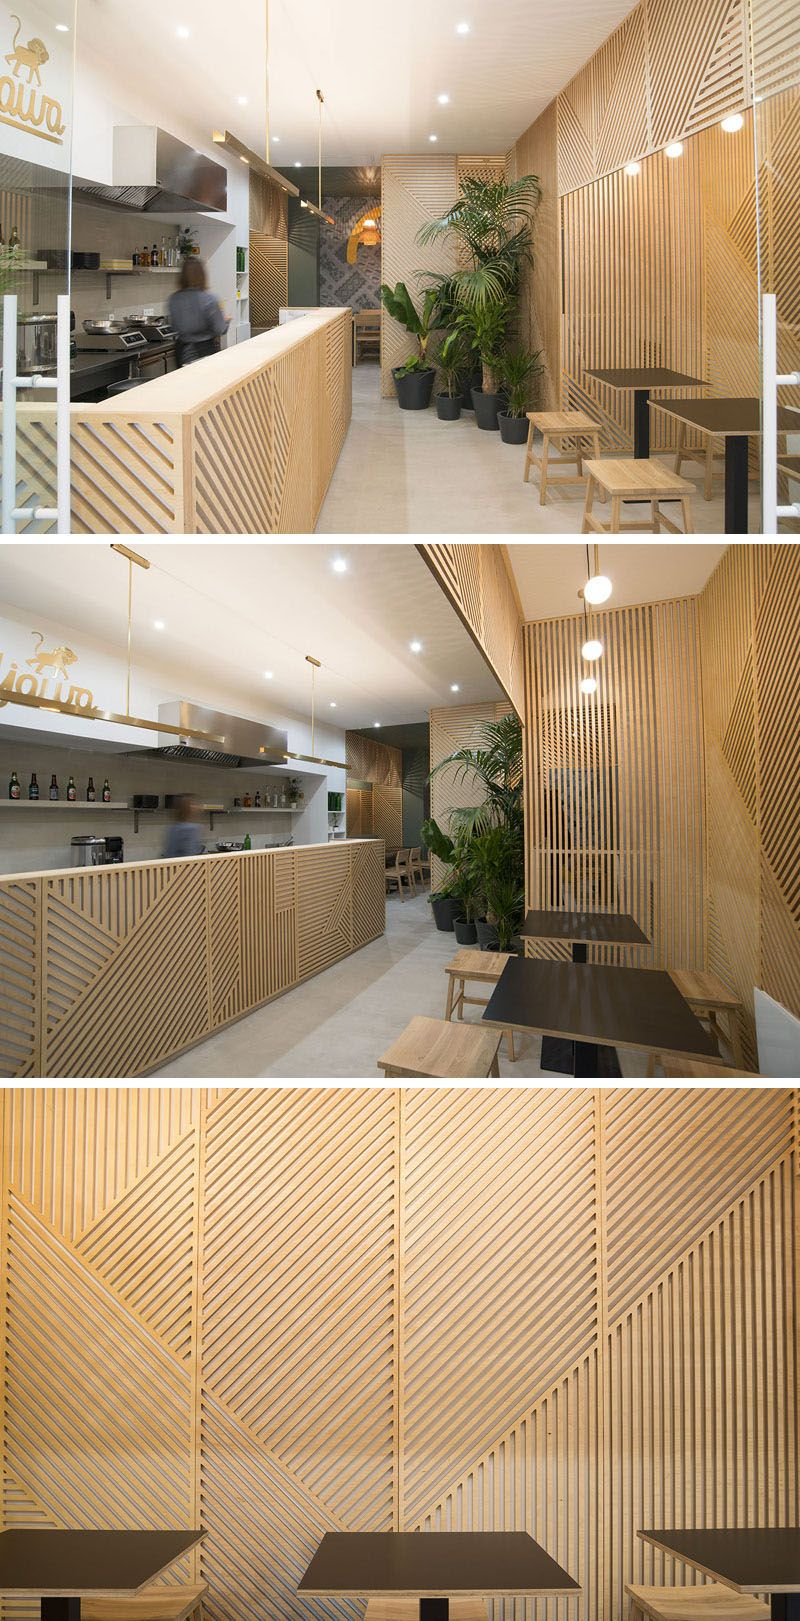 Abstract Bar And Panel Wall Decor For Preferred Wall Decor Idea – This Restaurant Covered Its Walls With Wood Panels (View 4 of 20)